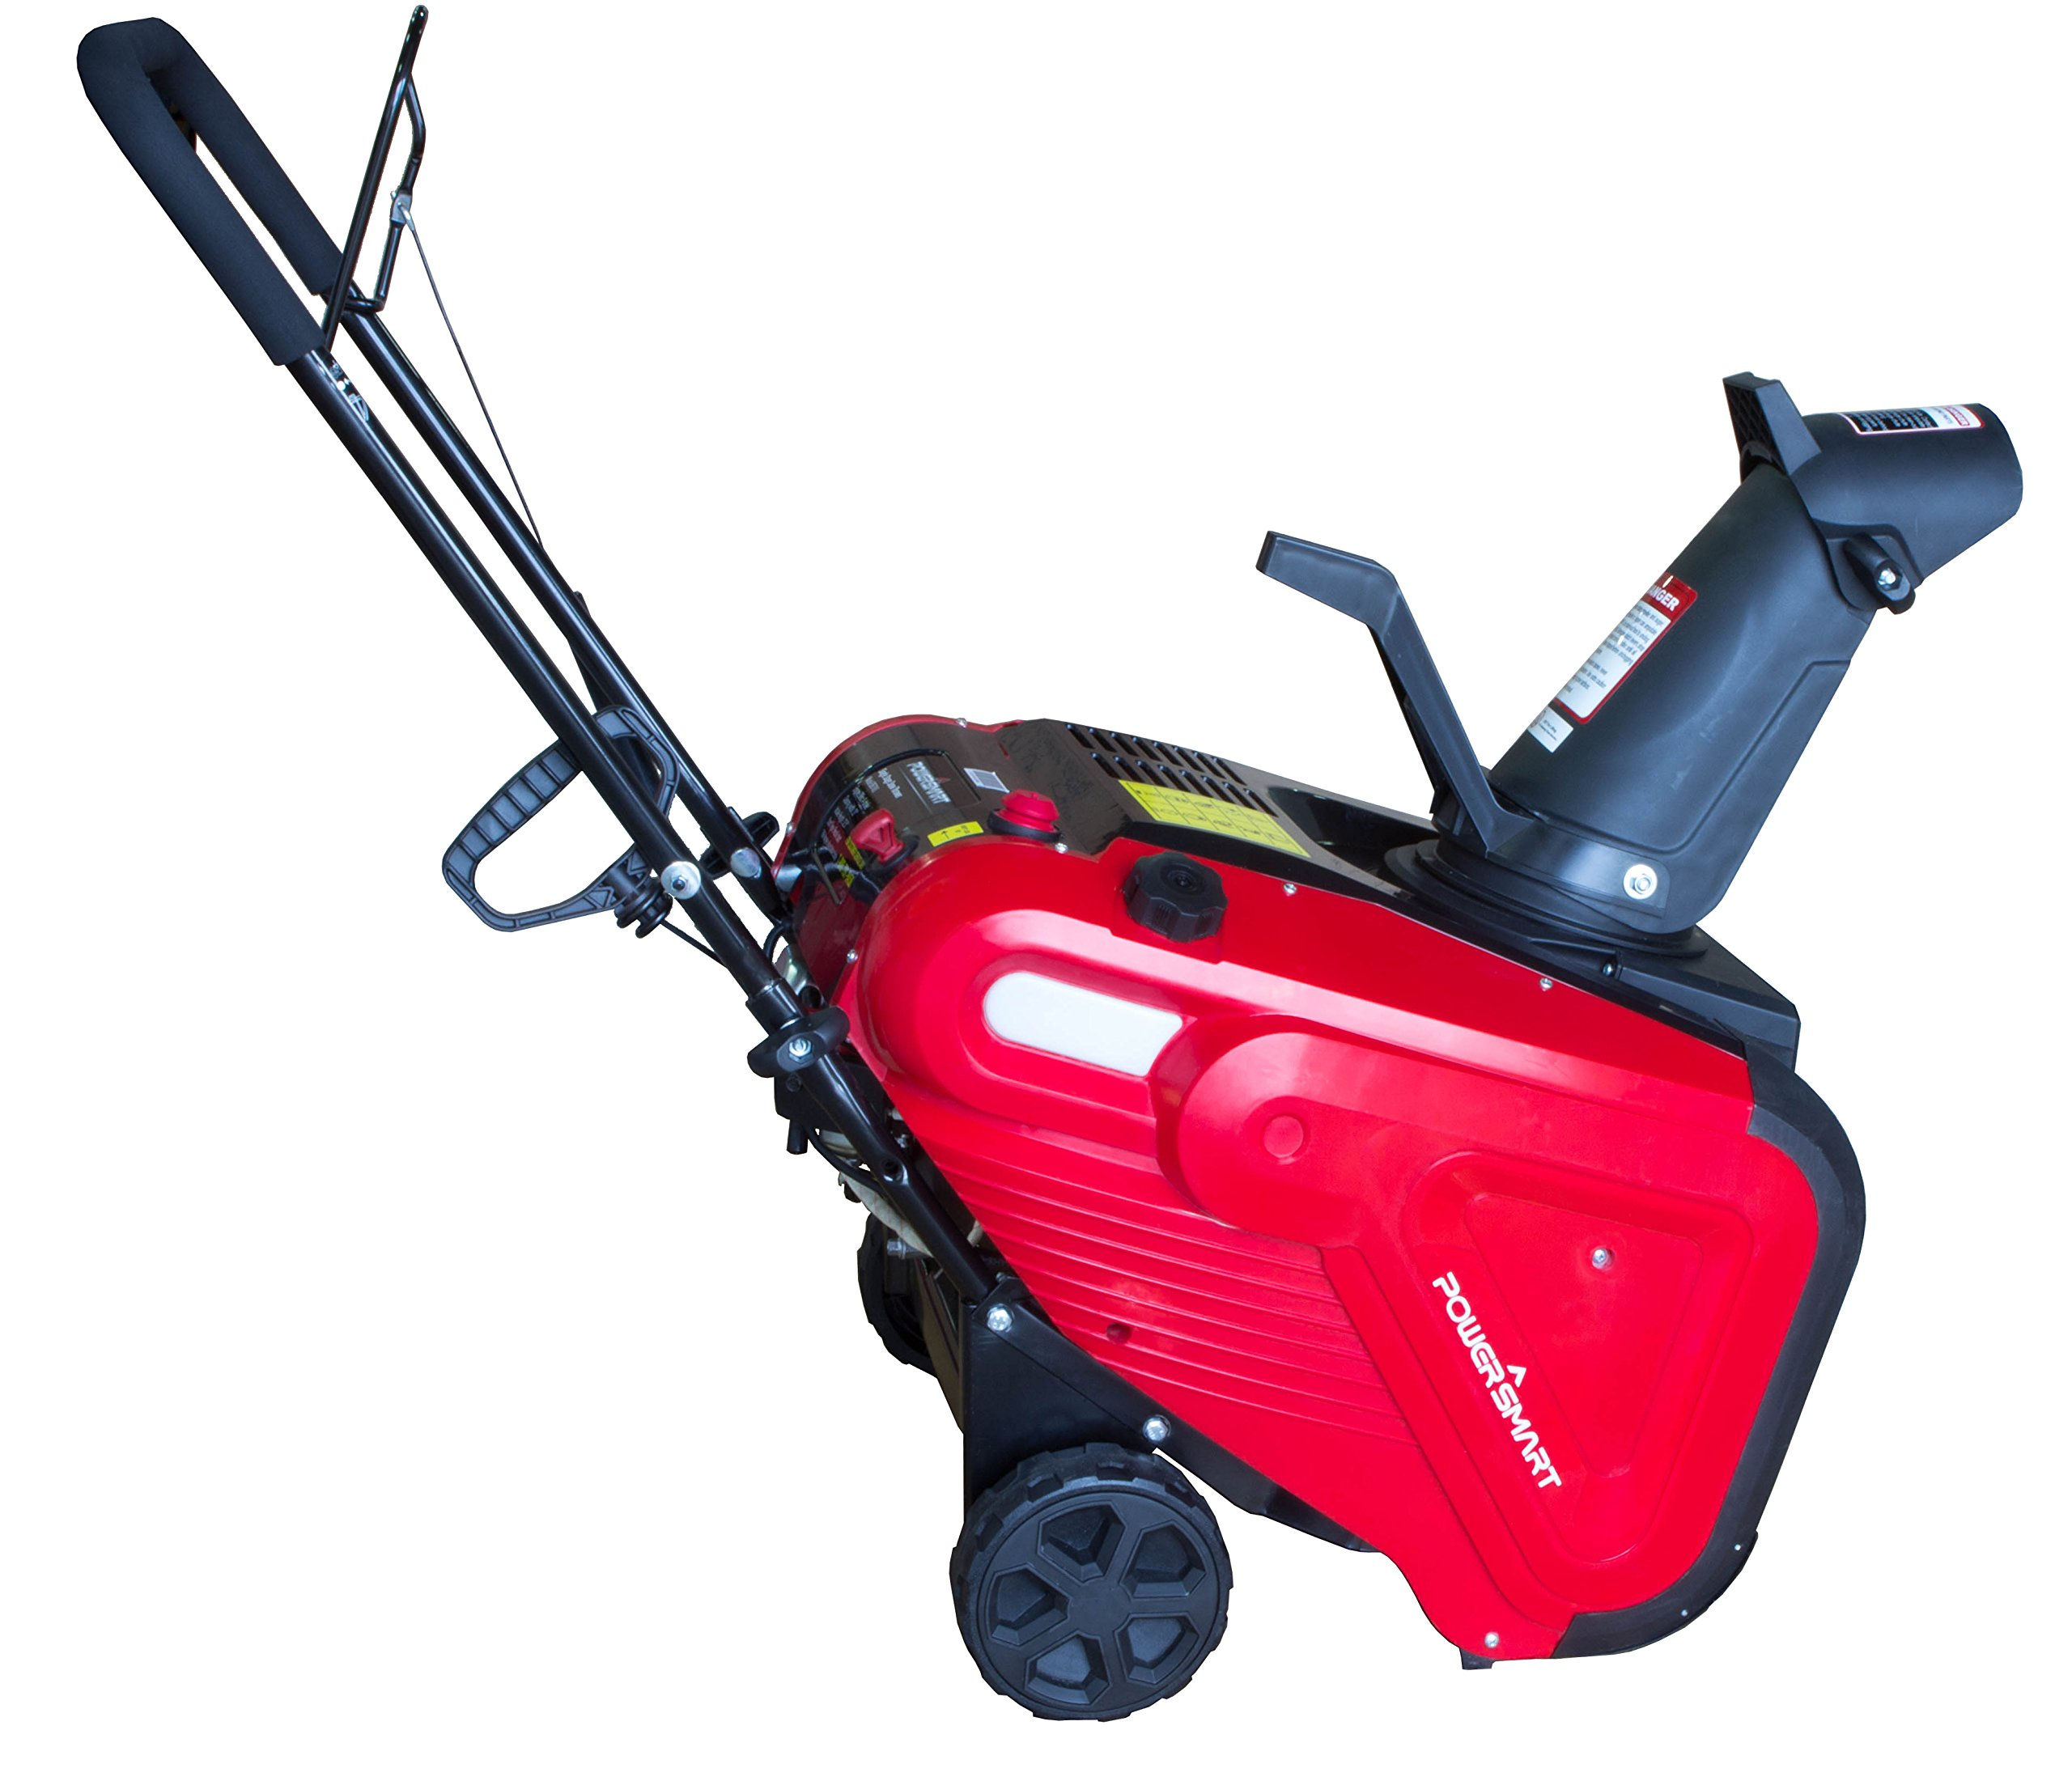 Power Smart DB7005 21 Inch 196 cc Single Stage Snow Thrower